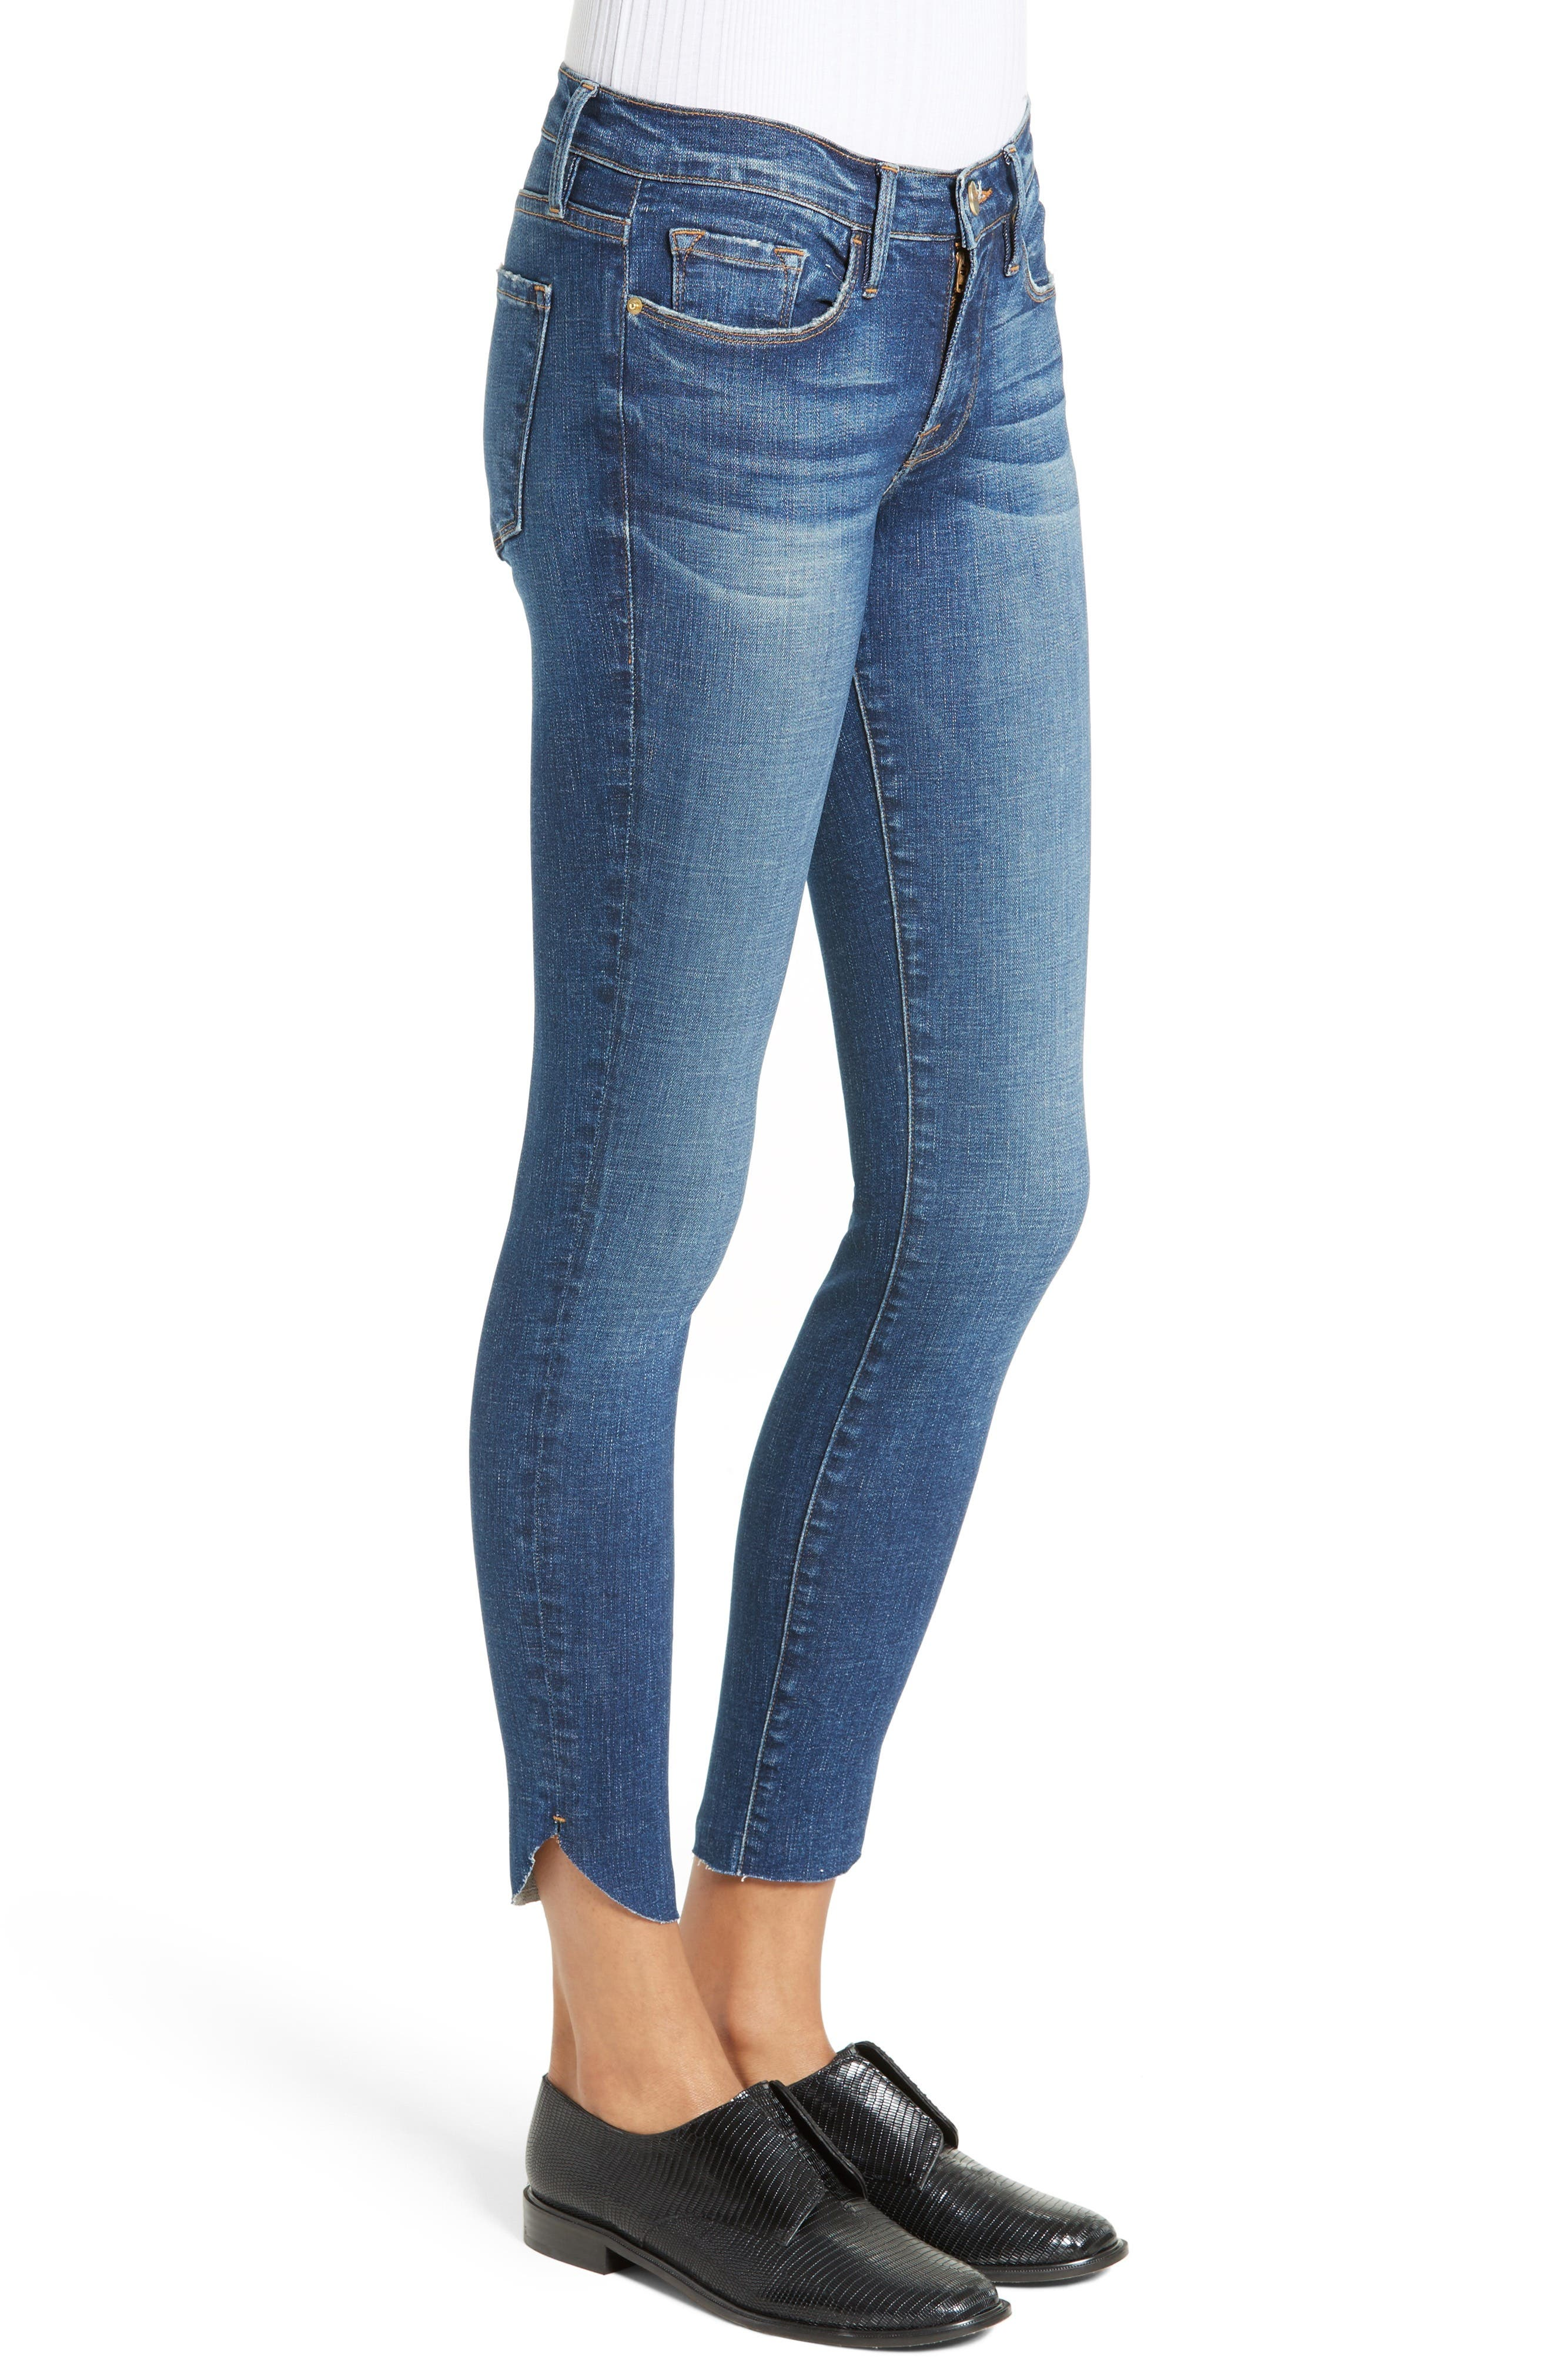 Alternate Image 3  - FRAME Le Skinny Raw Tulip Crop Jeans (York) (Nordstrom Exclusive)